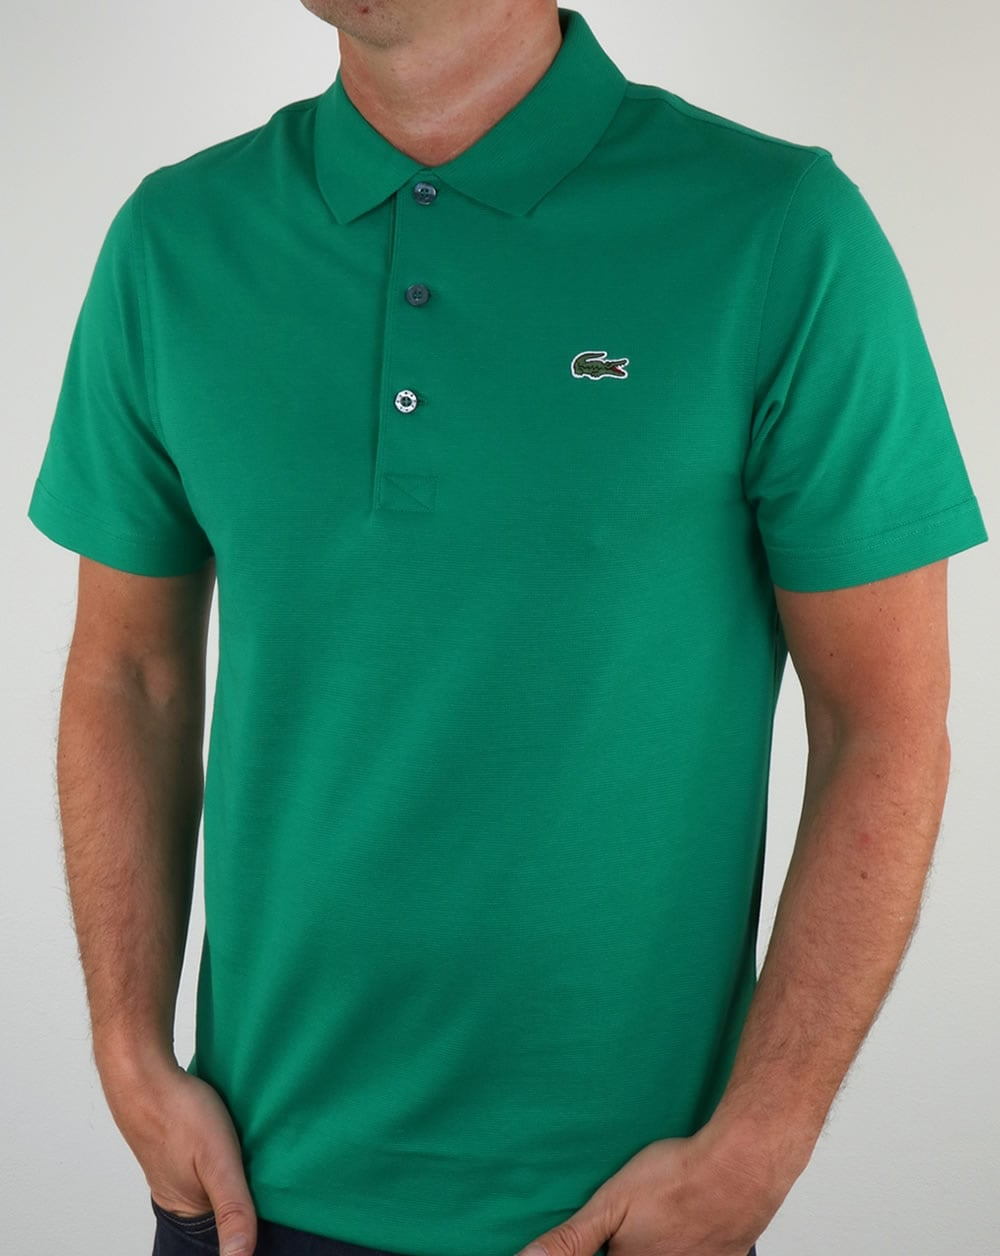 Lacoste Polo Shirt Woodland Green, Men's, Top